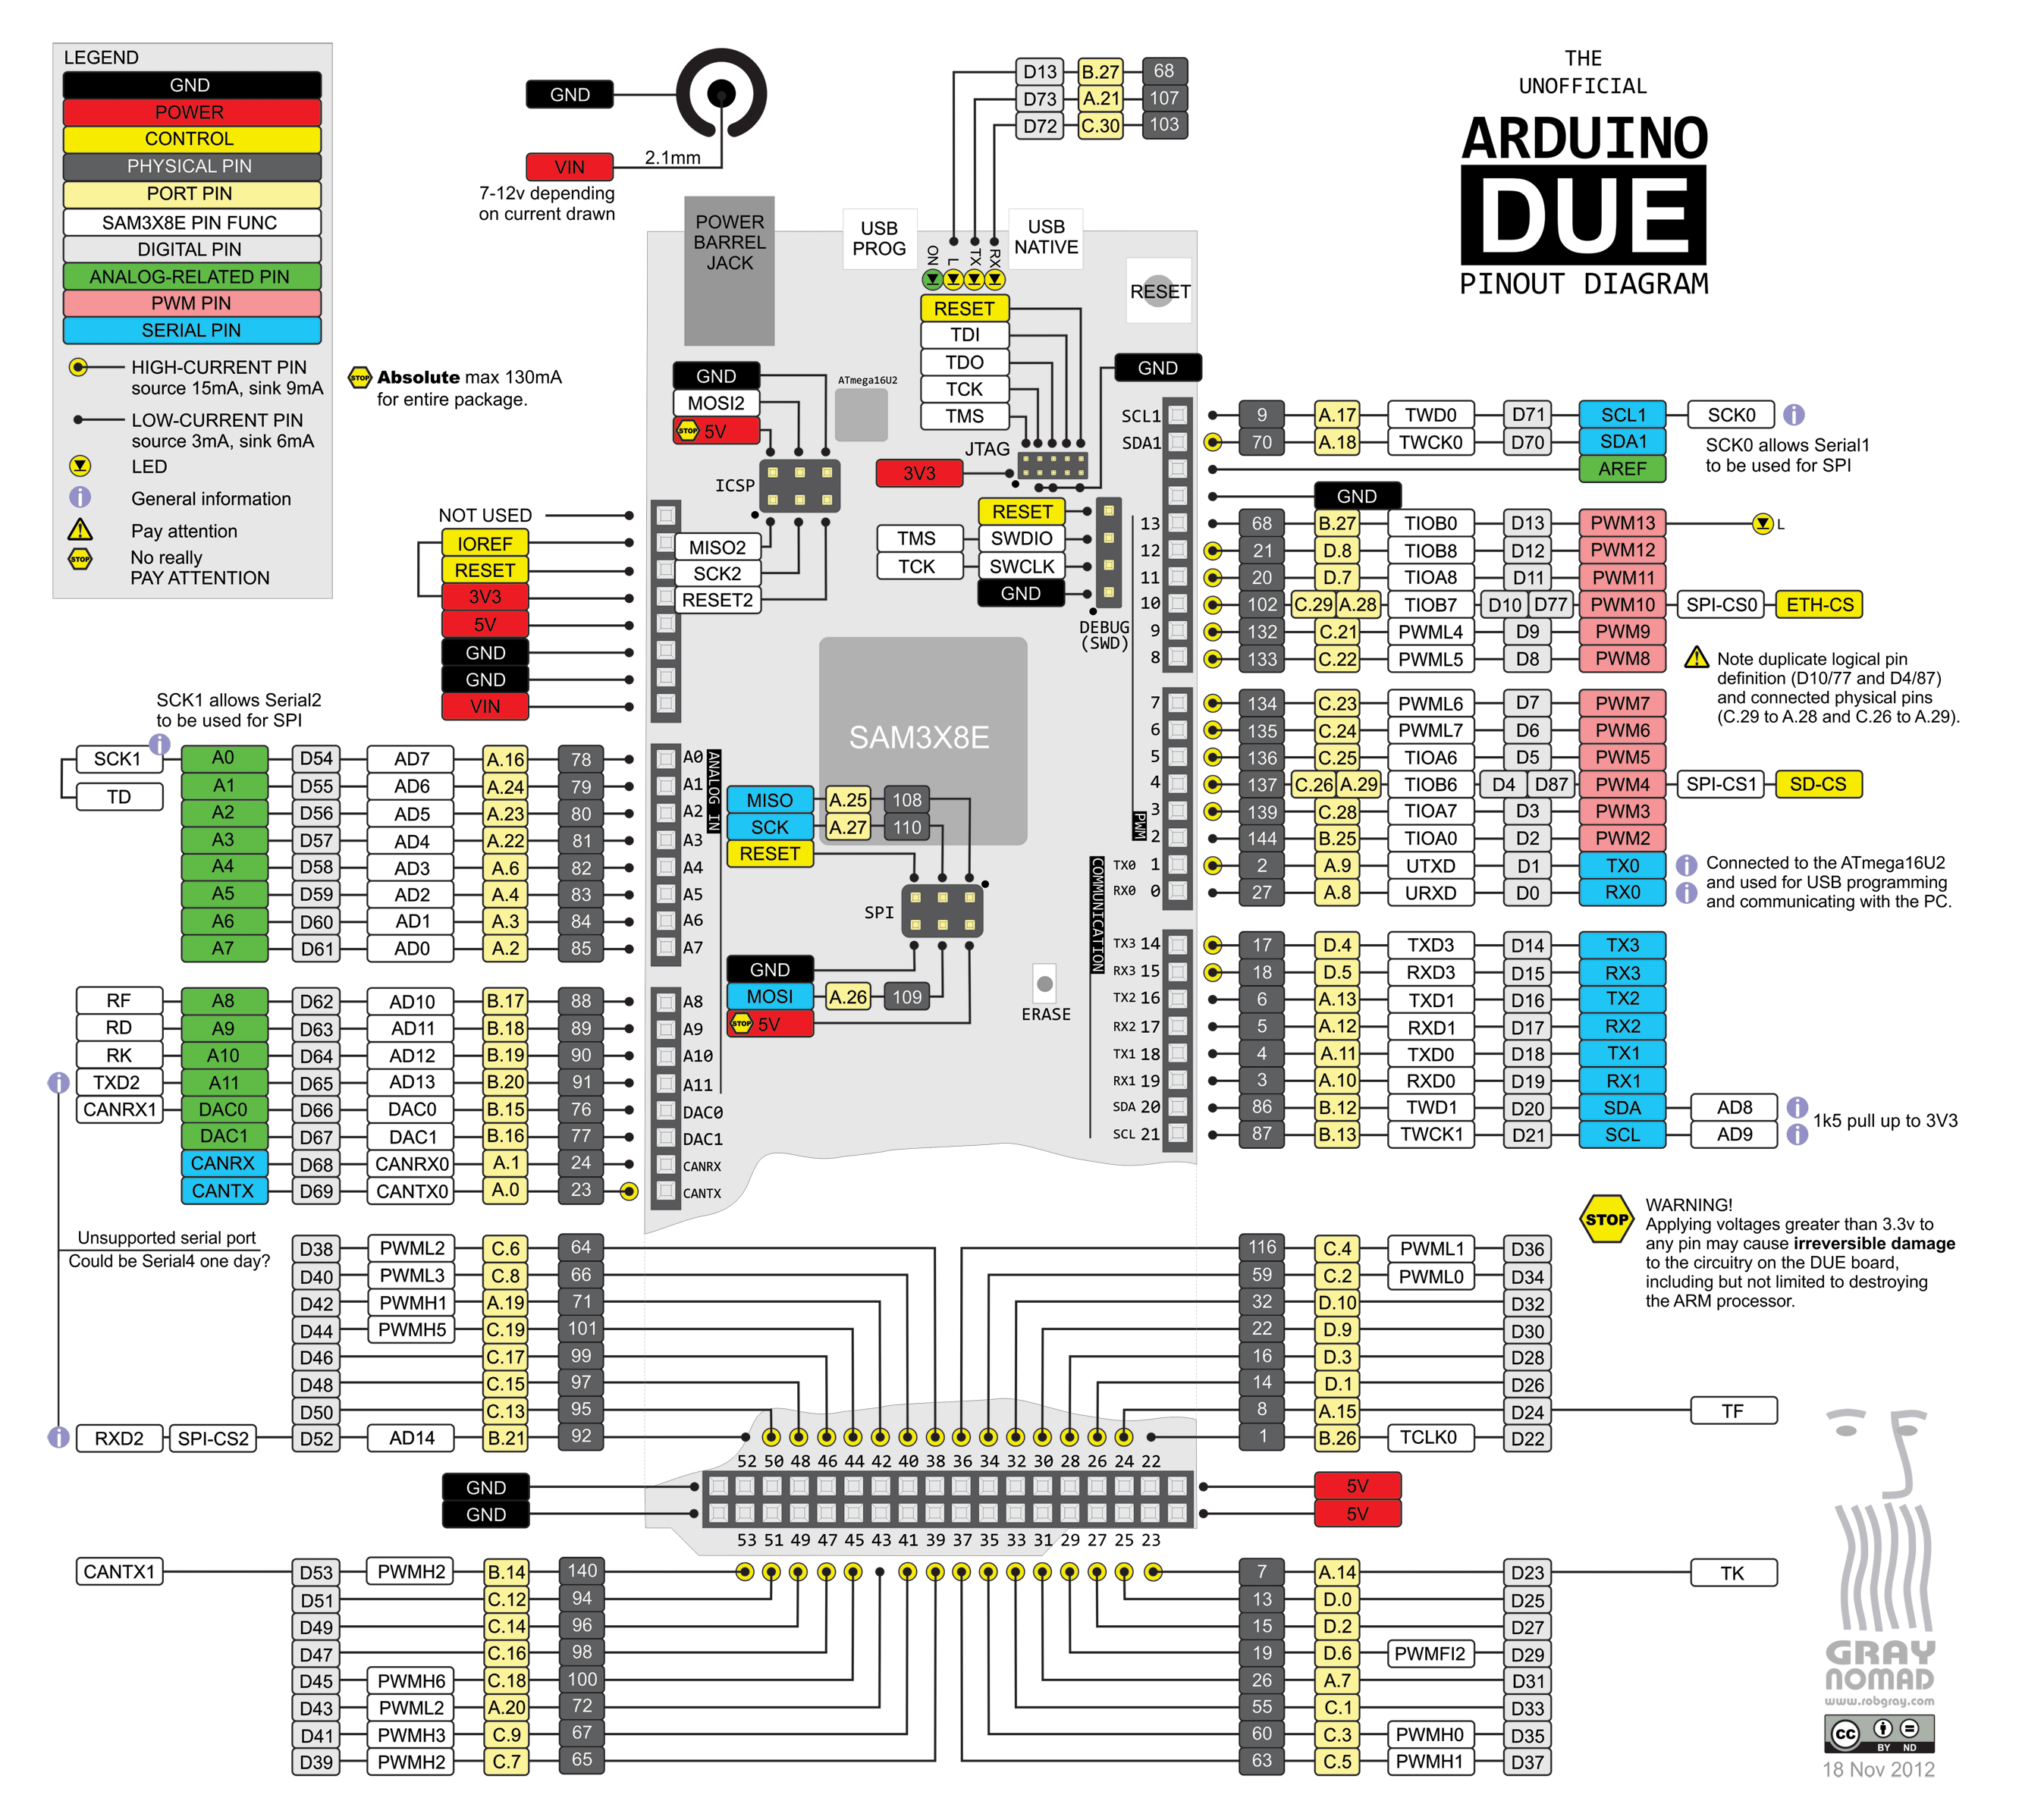 Arduino Mega 2560 Pin Diagram 2002 Chevy Trailblazer Factory Stereo Wiring Due Pinout 26662400 Pinterest